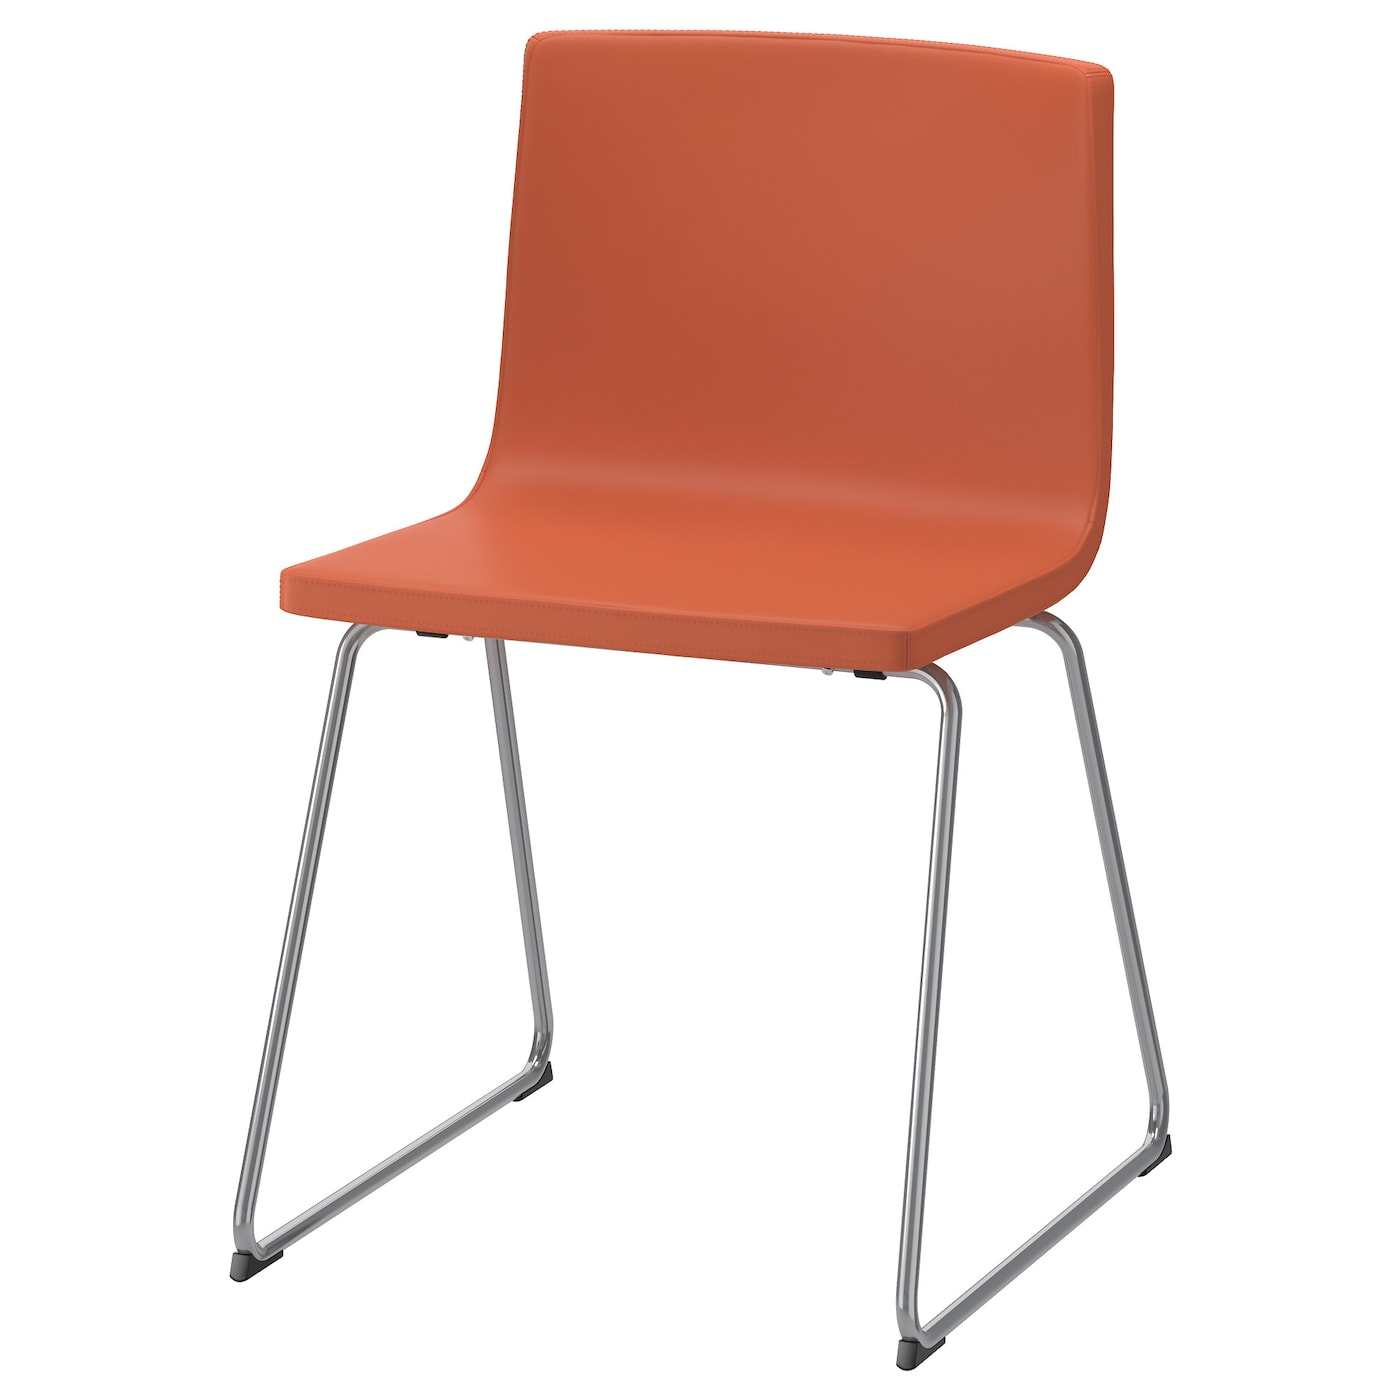 Bernhard chair chrome plated mjuk orange ikea - Fauteuil orange ikea ...